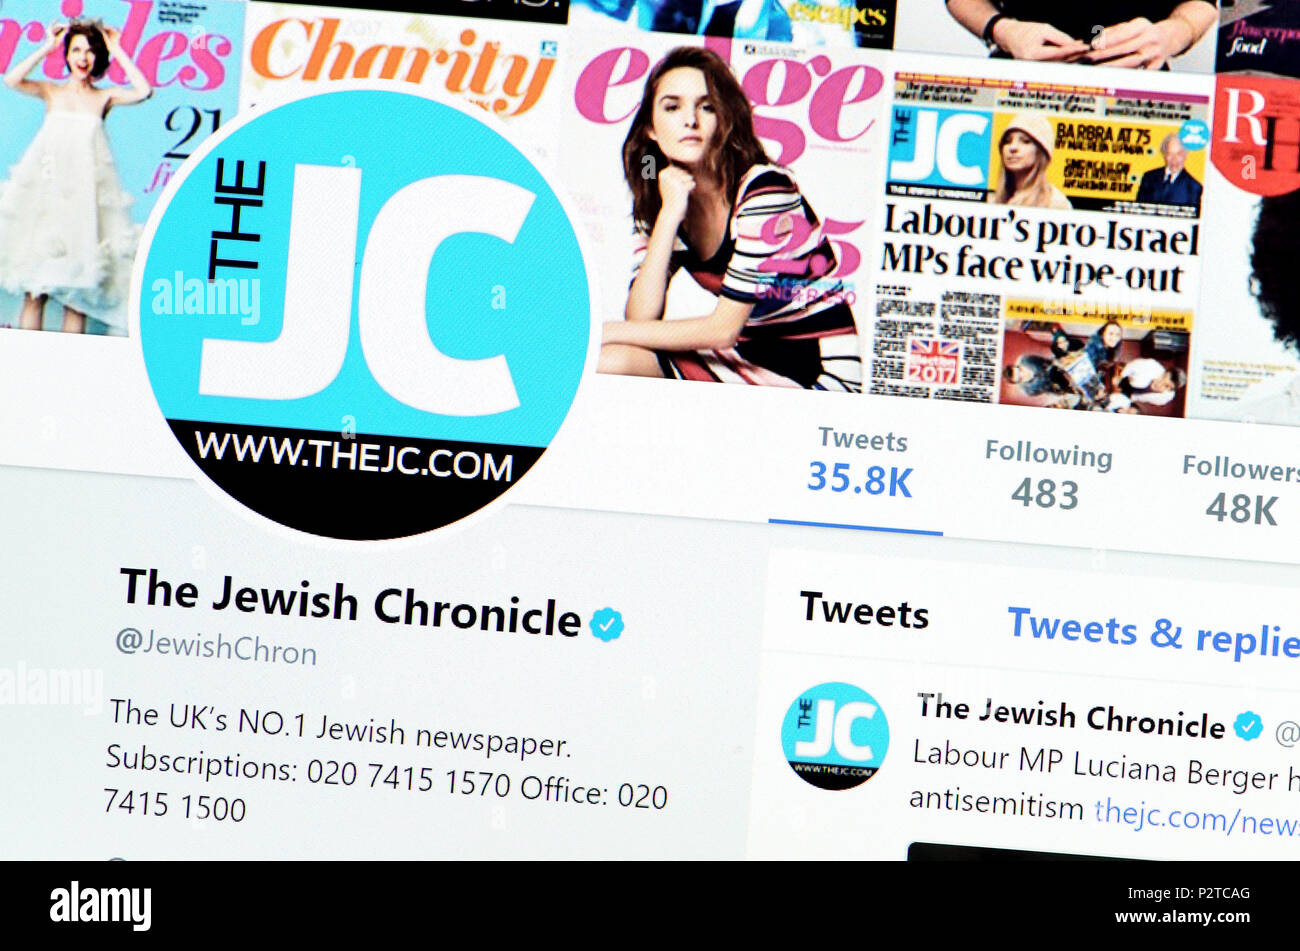 The Jewish Chronicle Twitter page (2018) - Stock Image